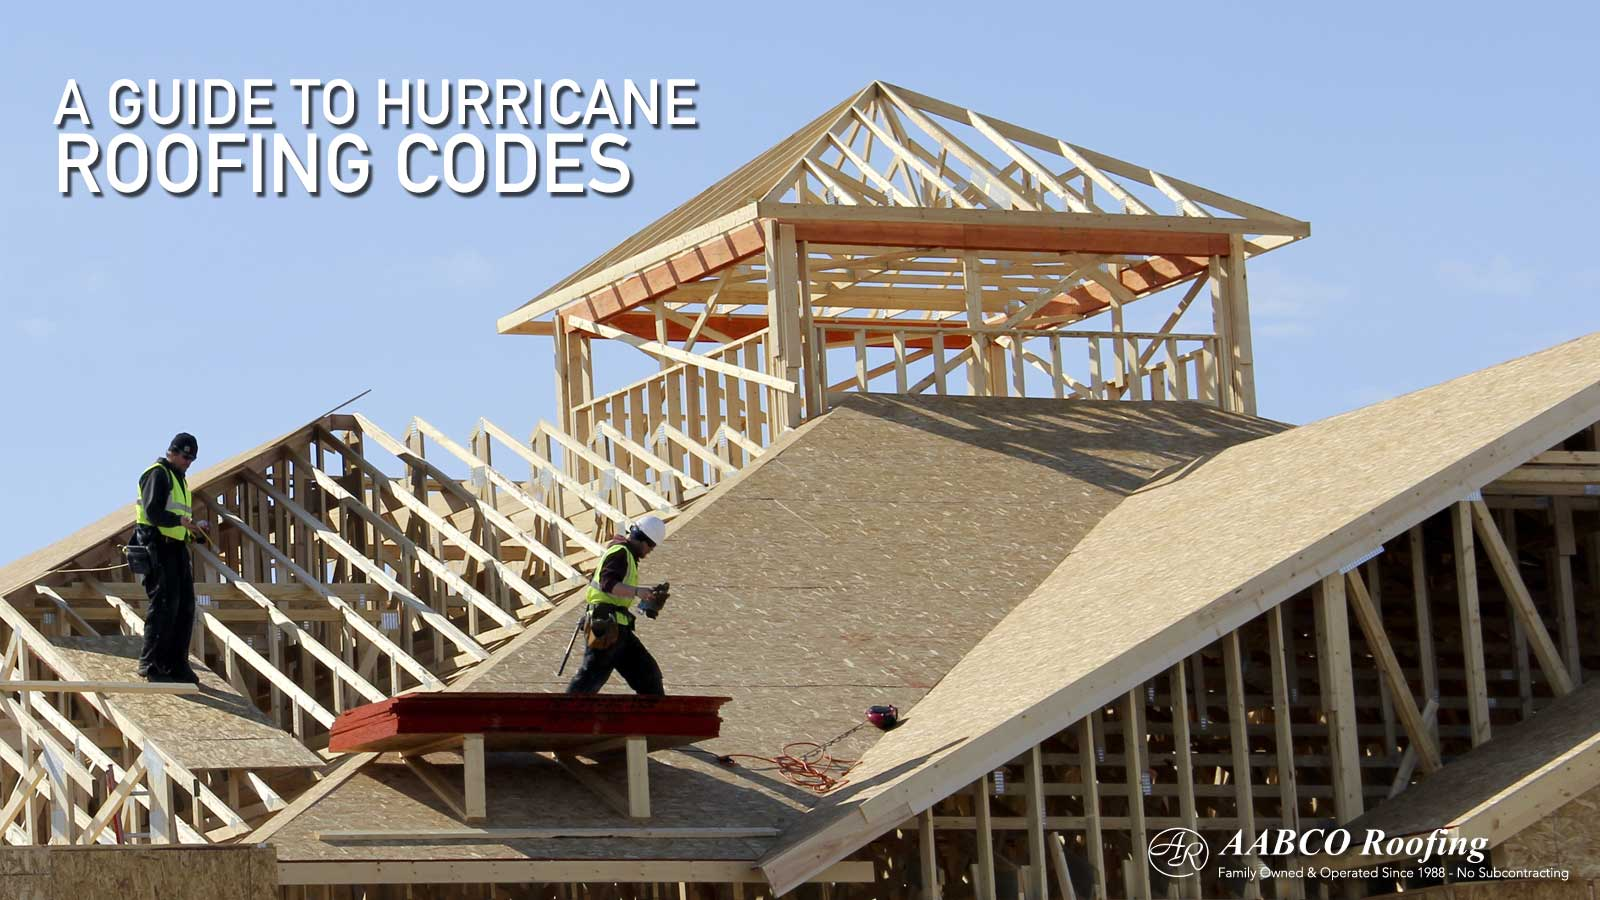 Hurricane Roofing Codes